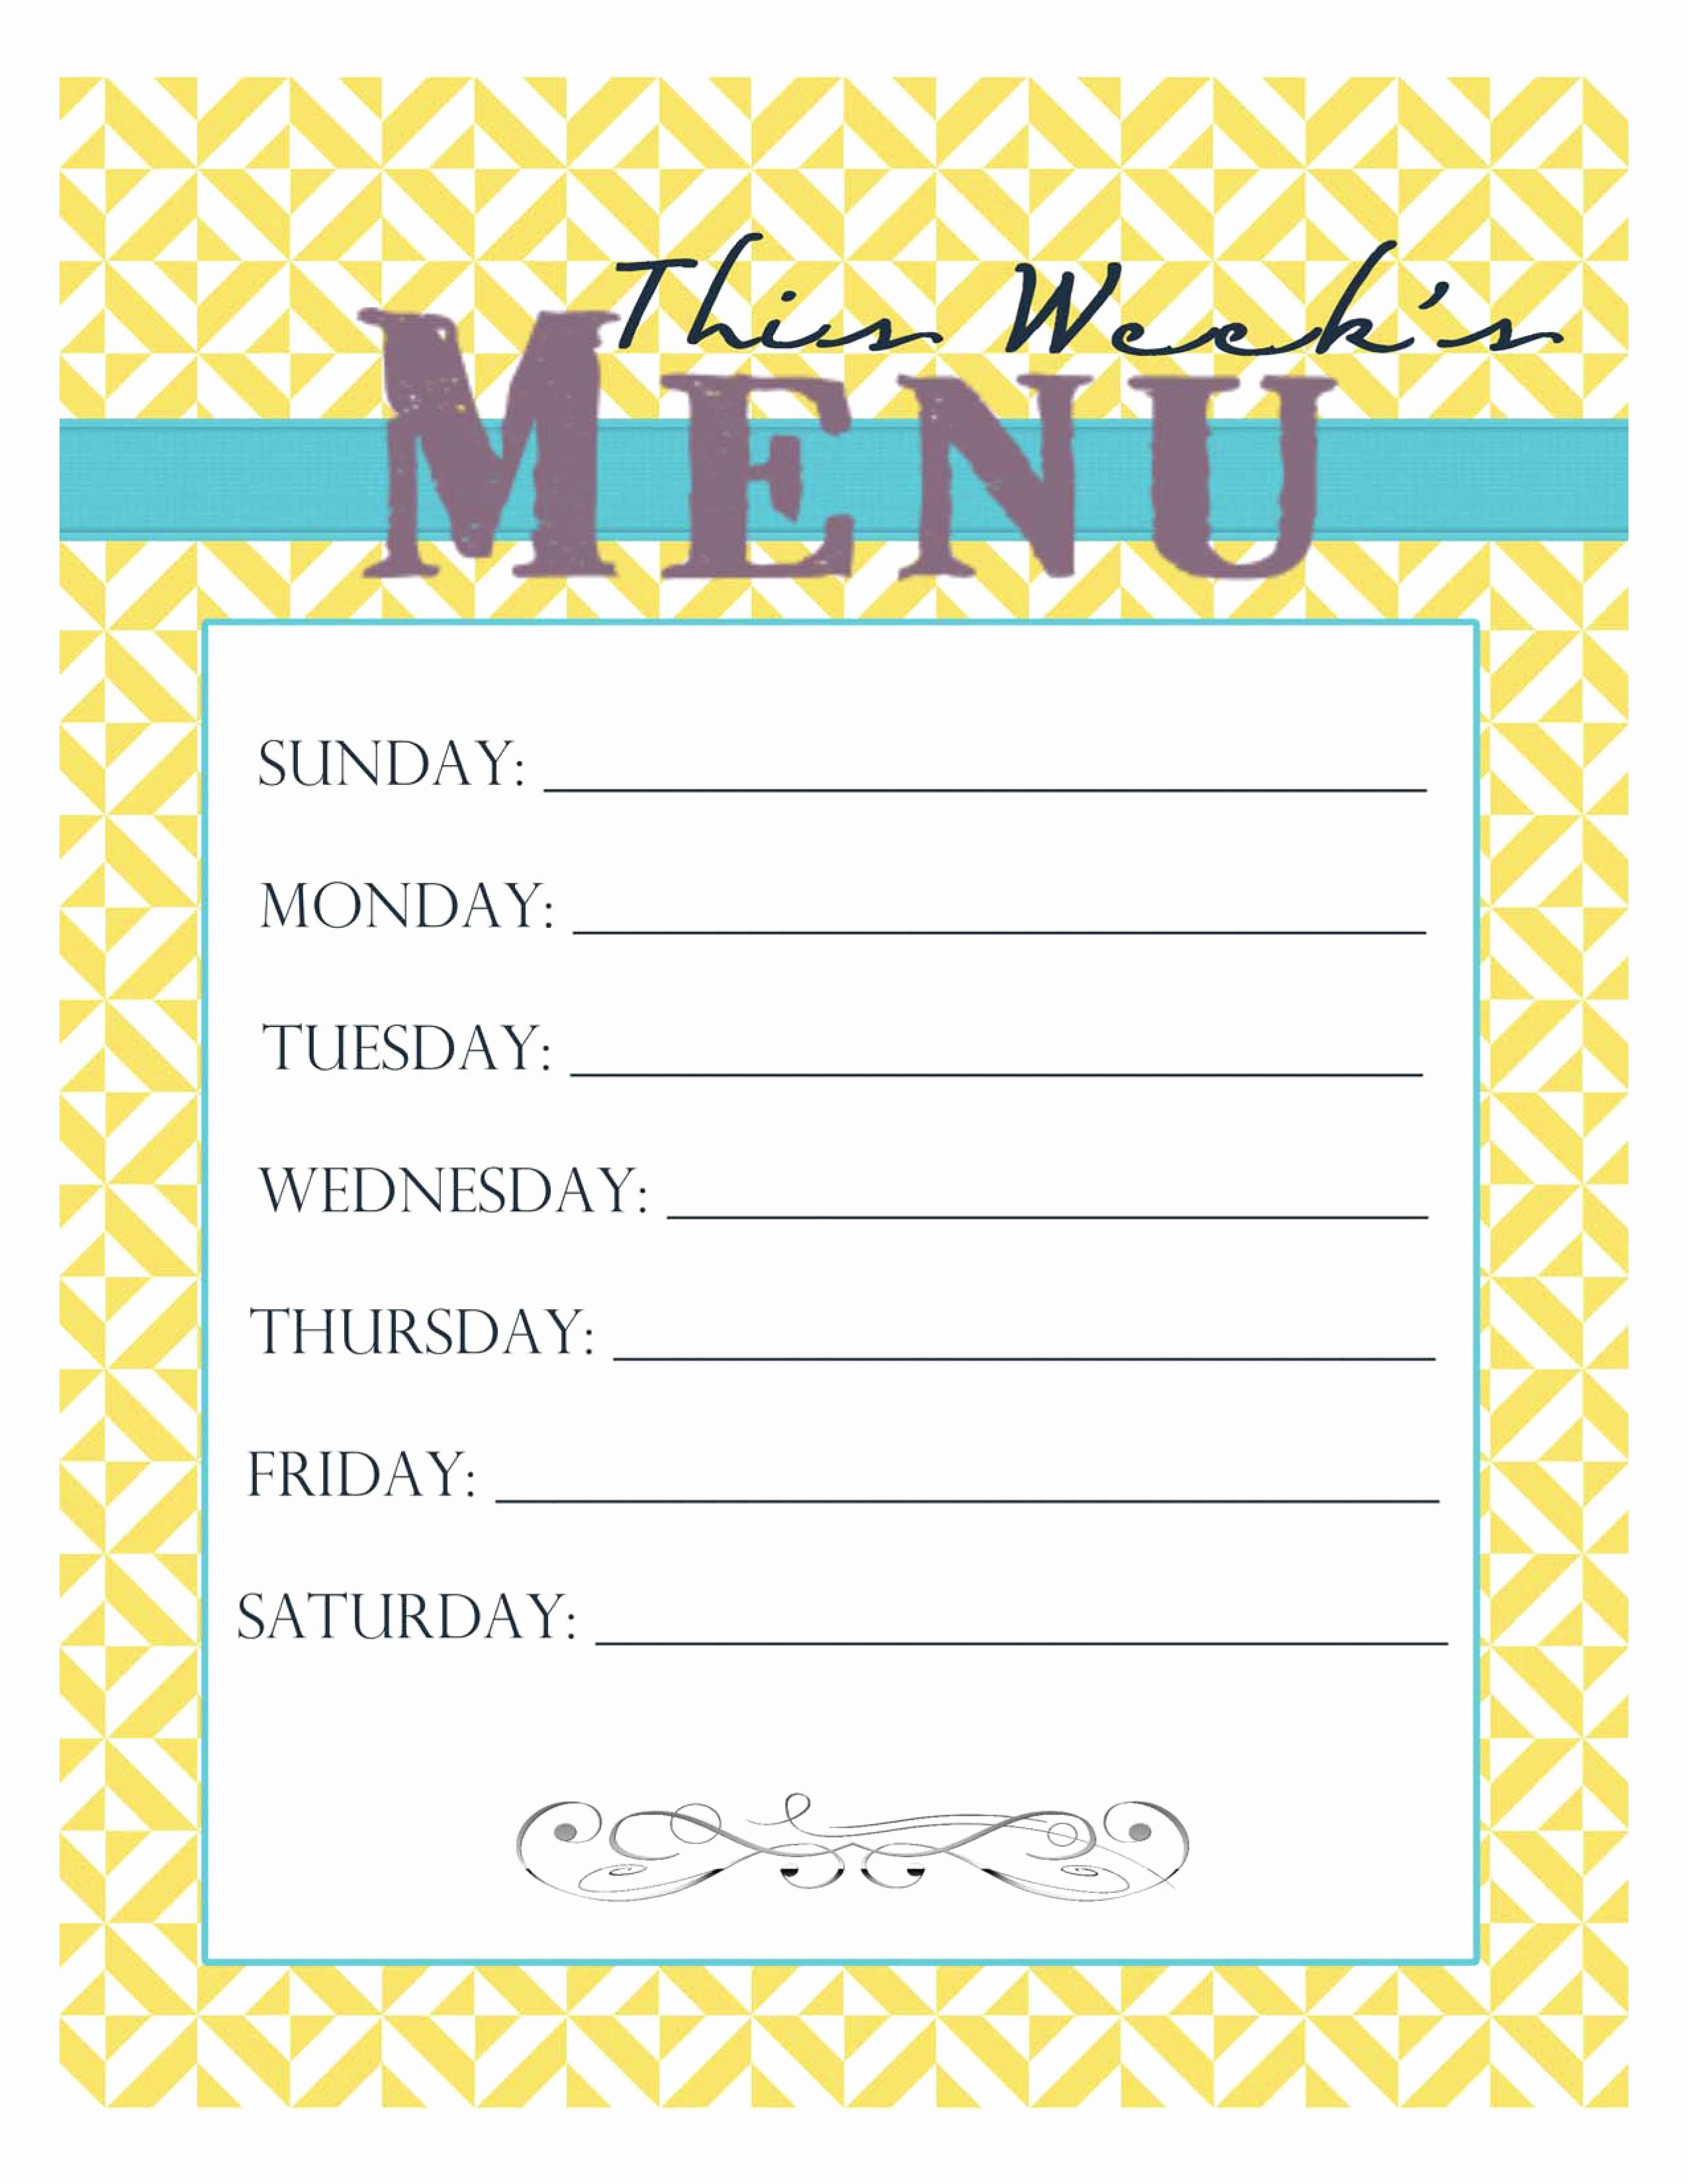 Free Printable Menu Template Inspirational Free Printable Menu Smitten Blog Designs